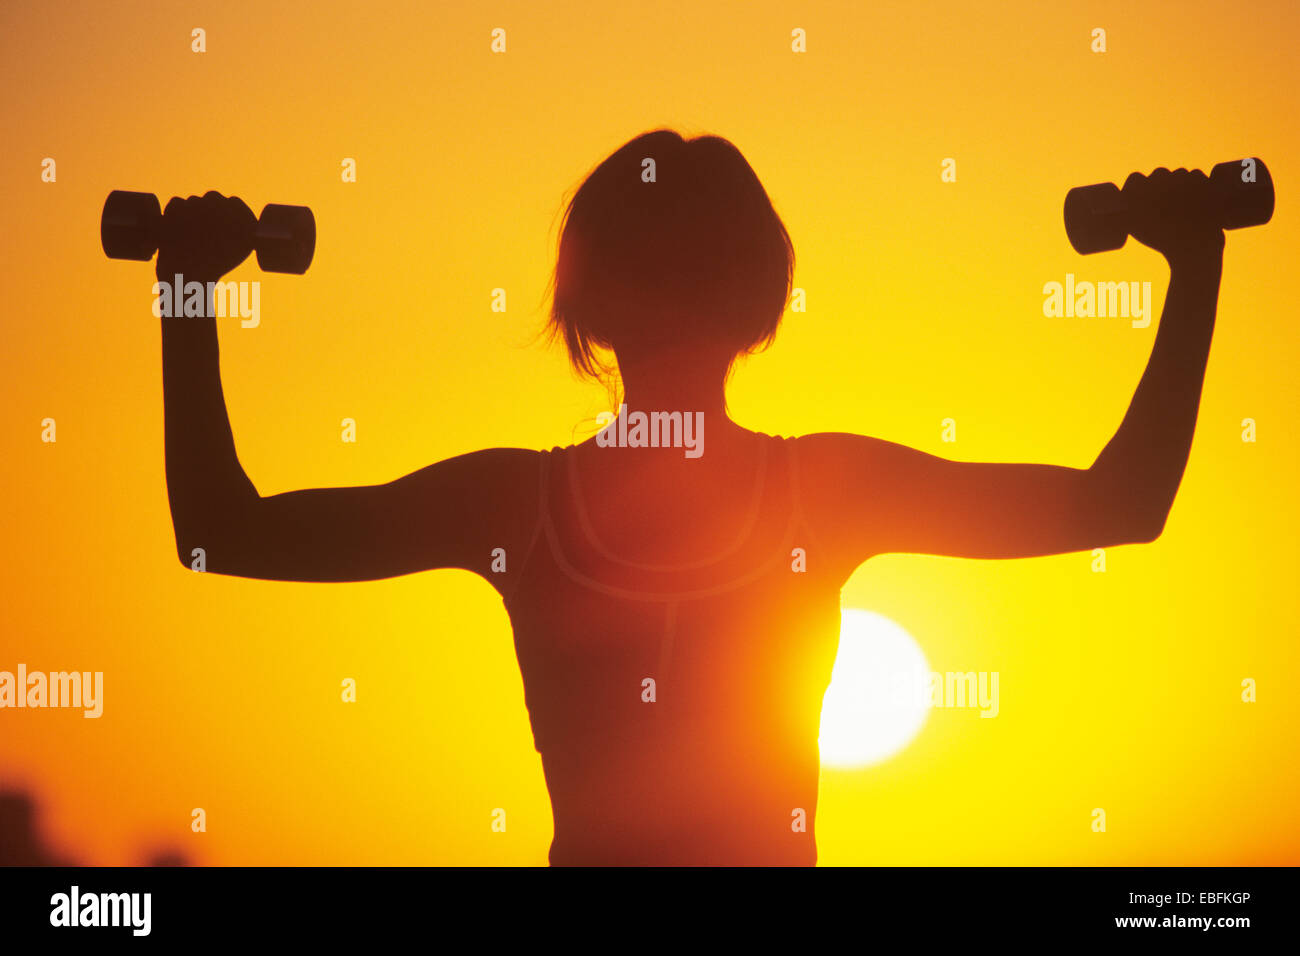 Silhouette of Woman with Dumbbells - Stock Image